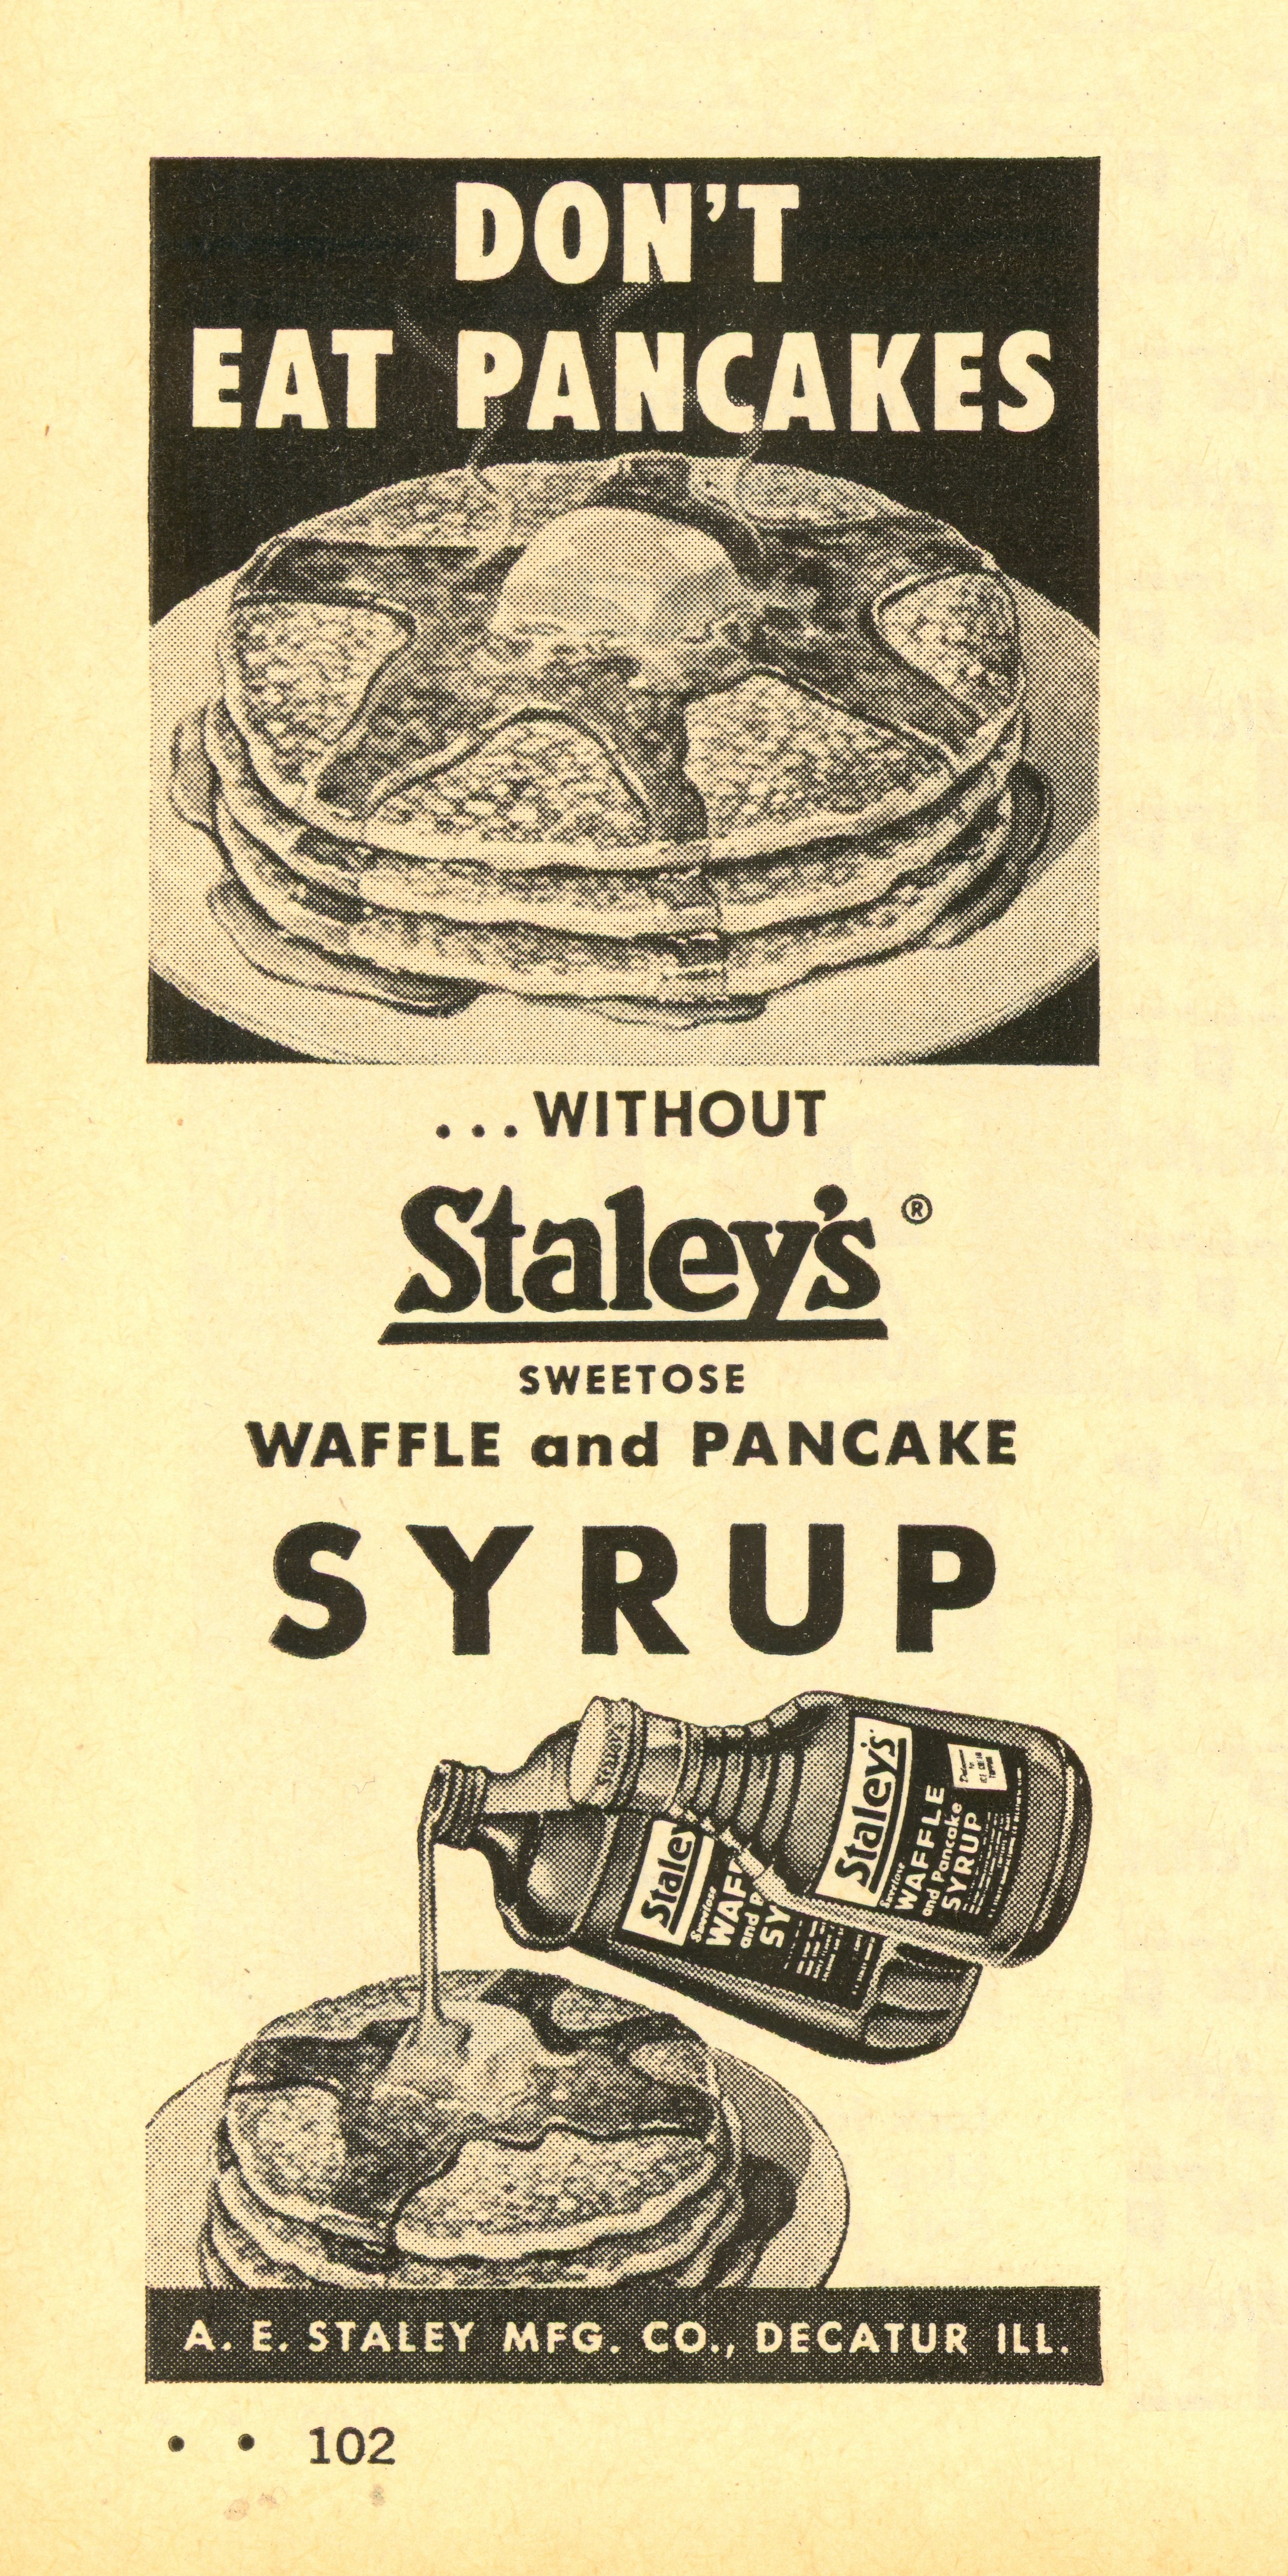 Staley's Syrup - published in Woman's Day - February 1958